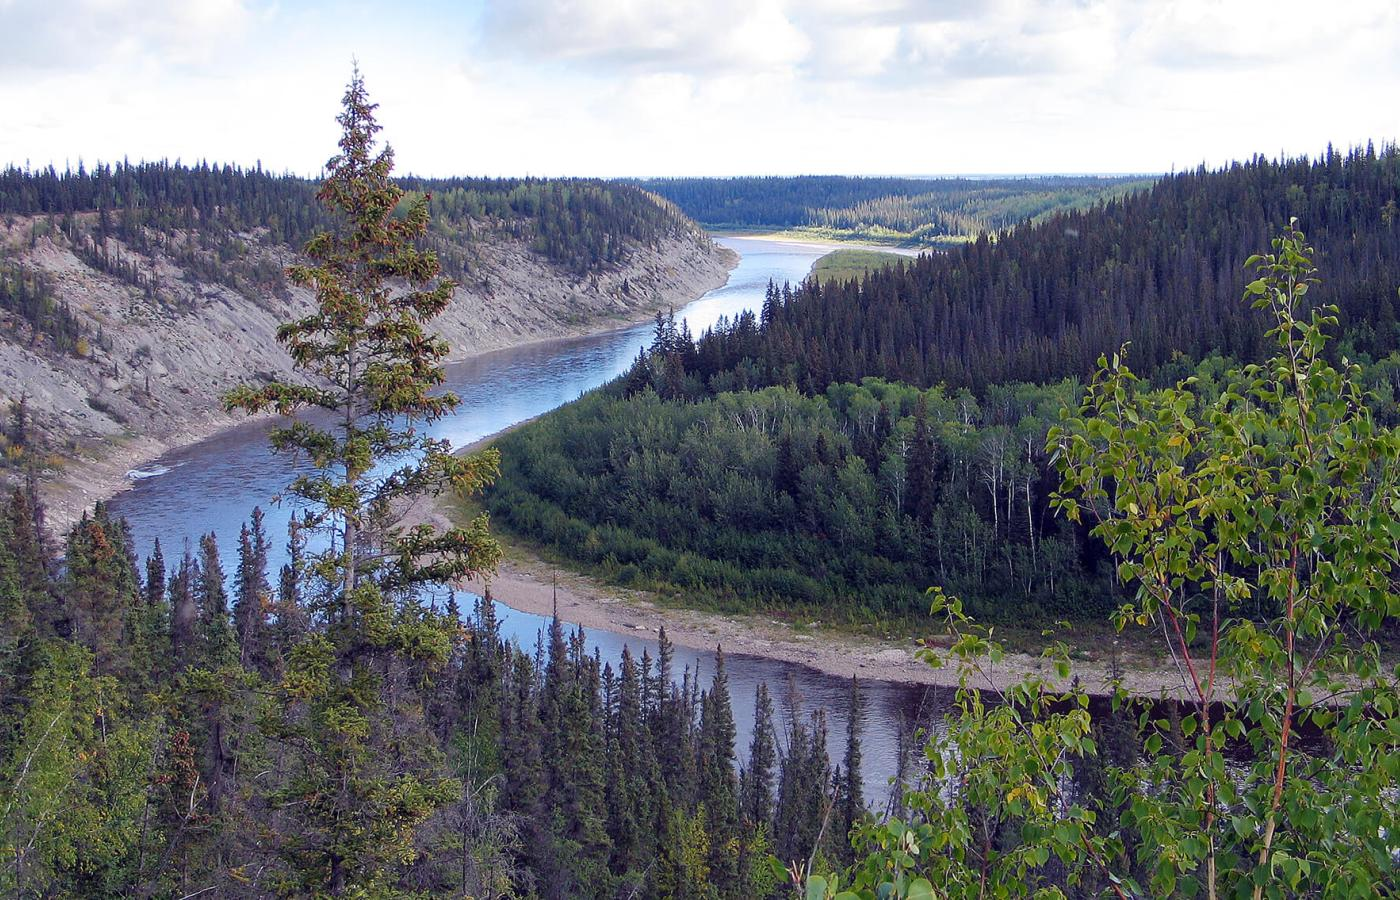 The Hay River flowing through in Enterprise